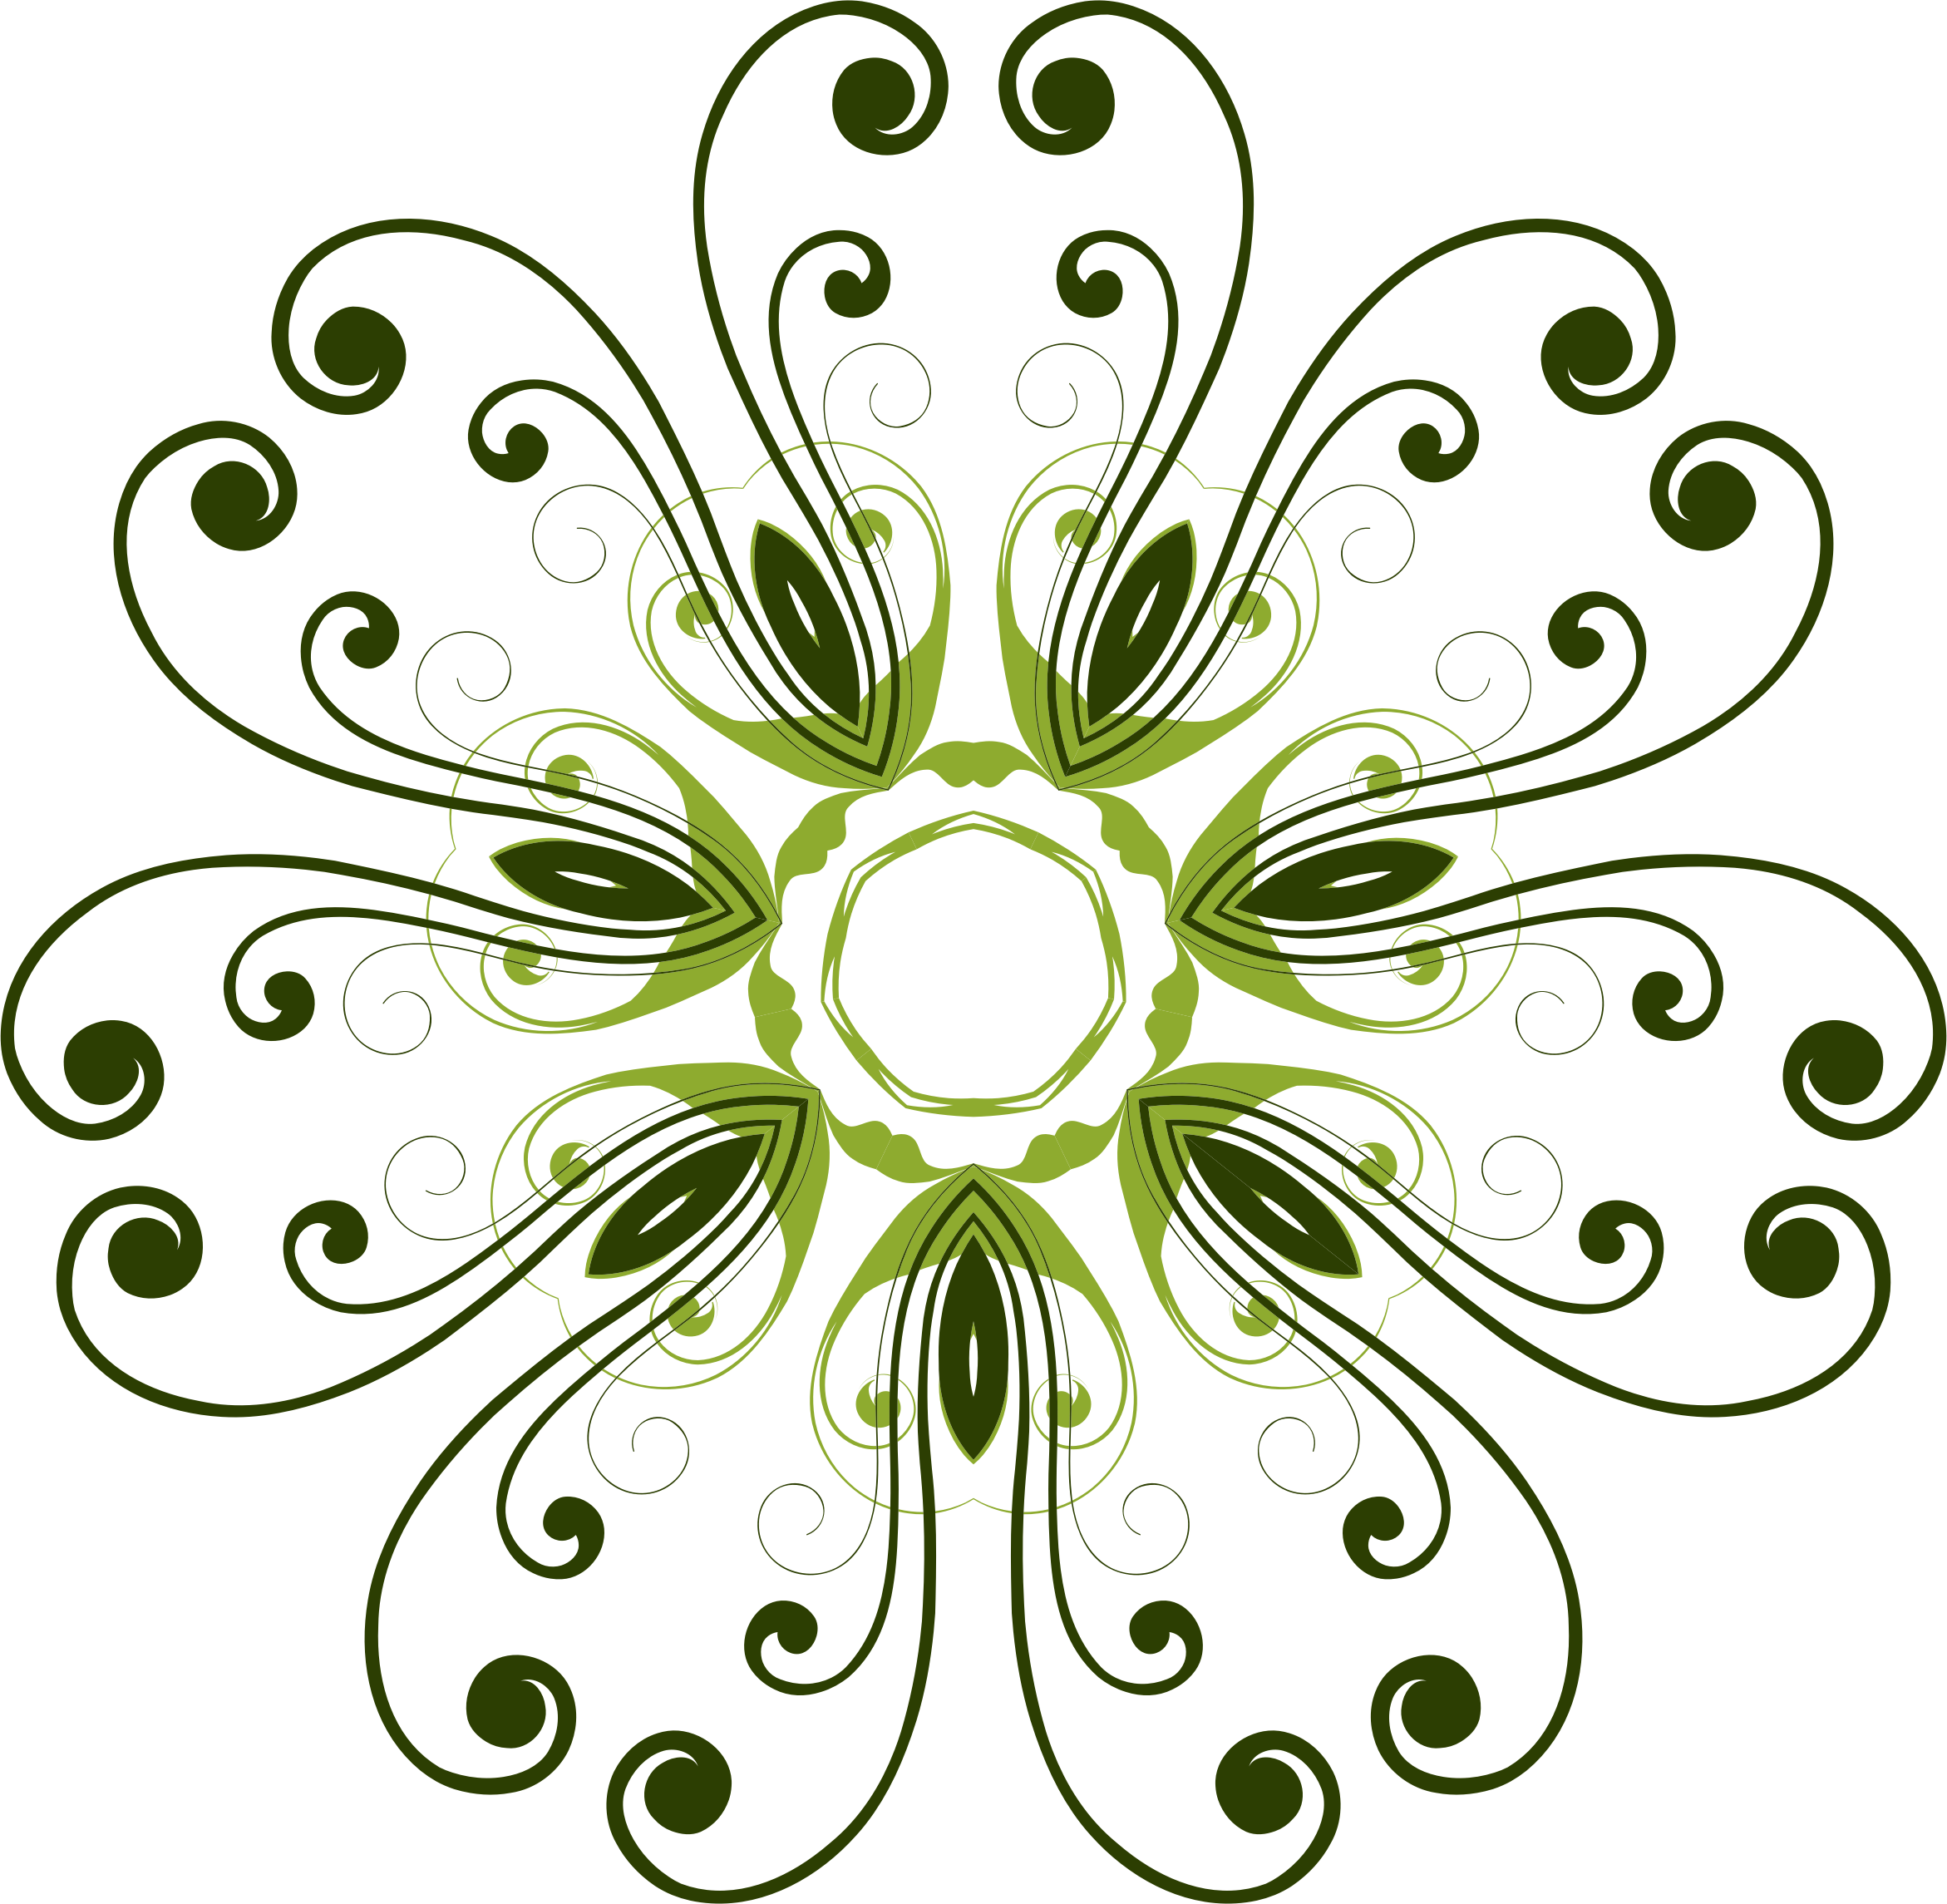 Flourish Flower Design by GDJ